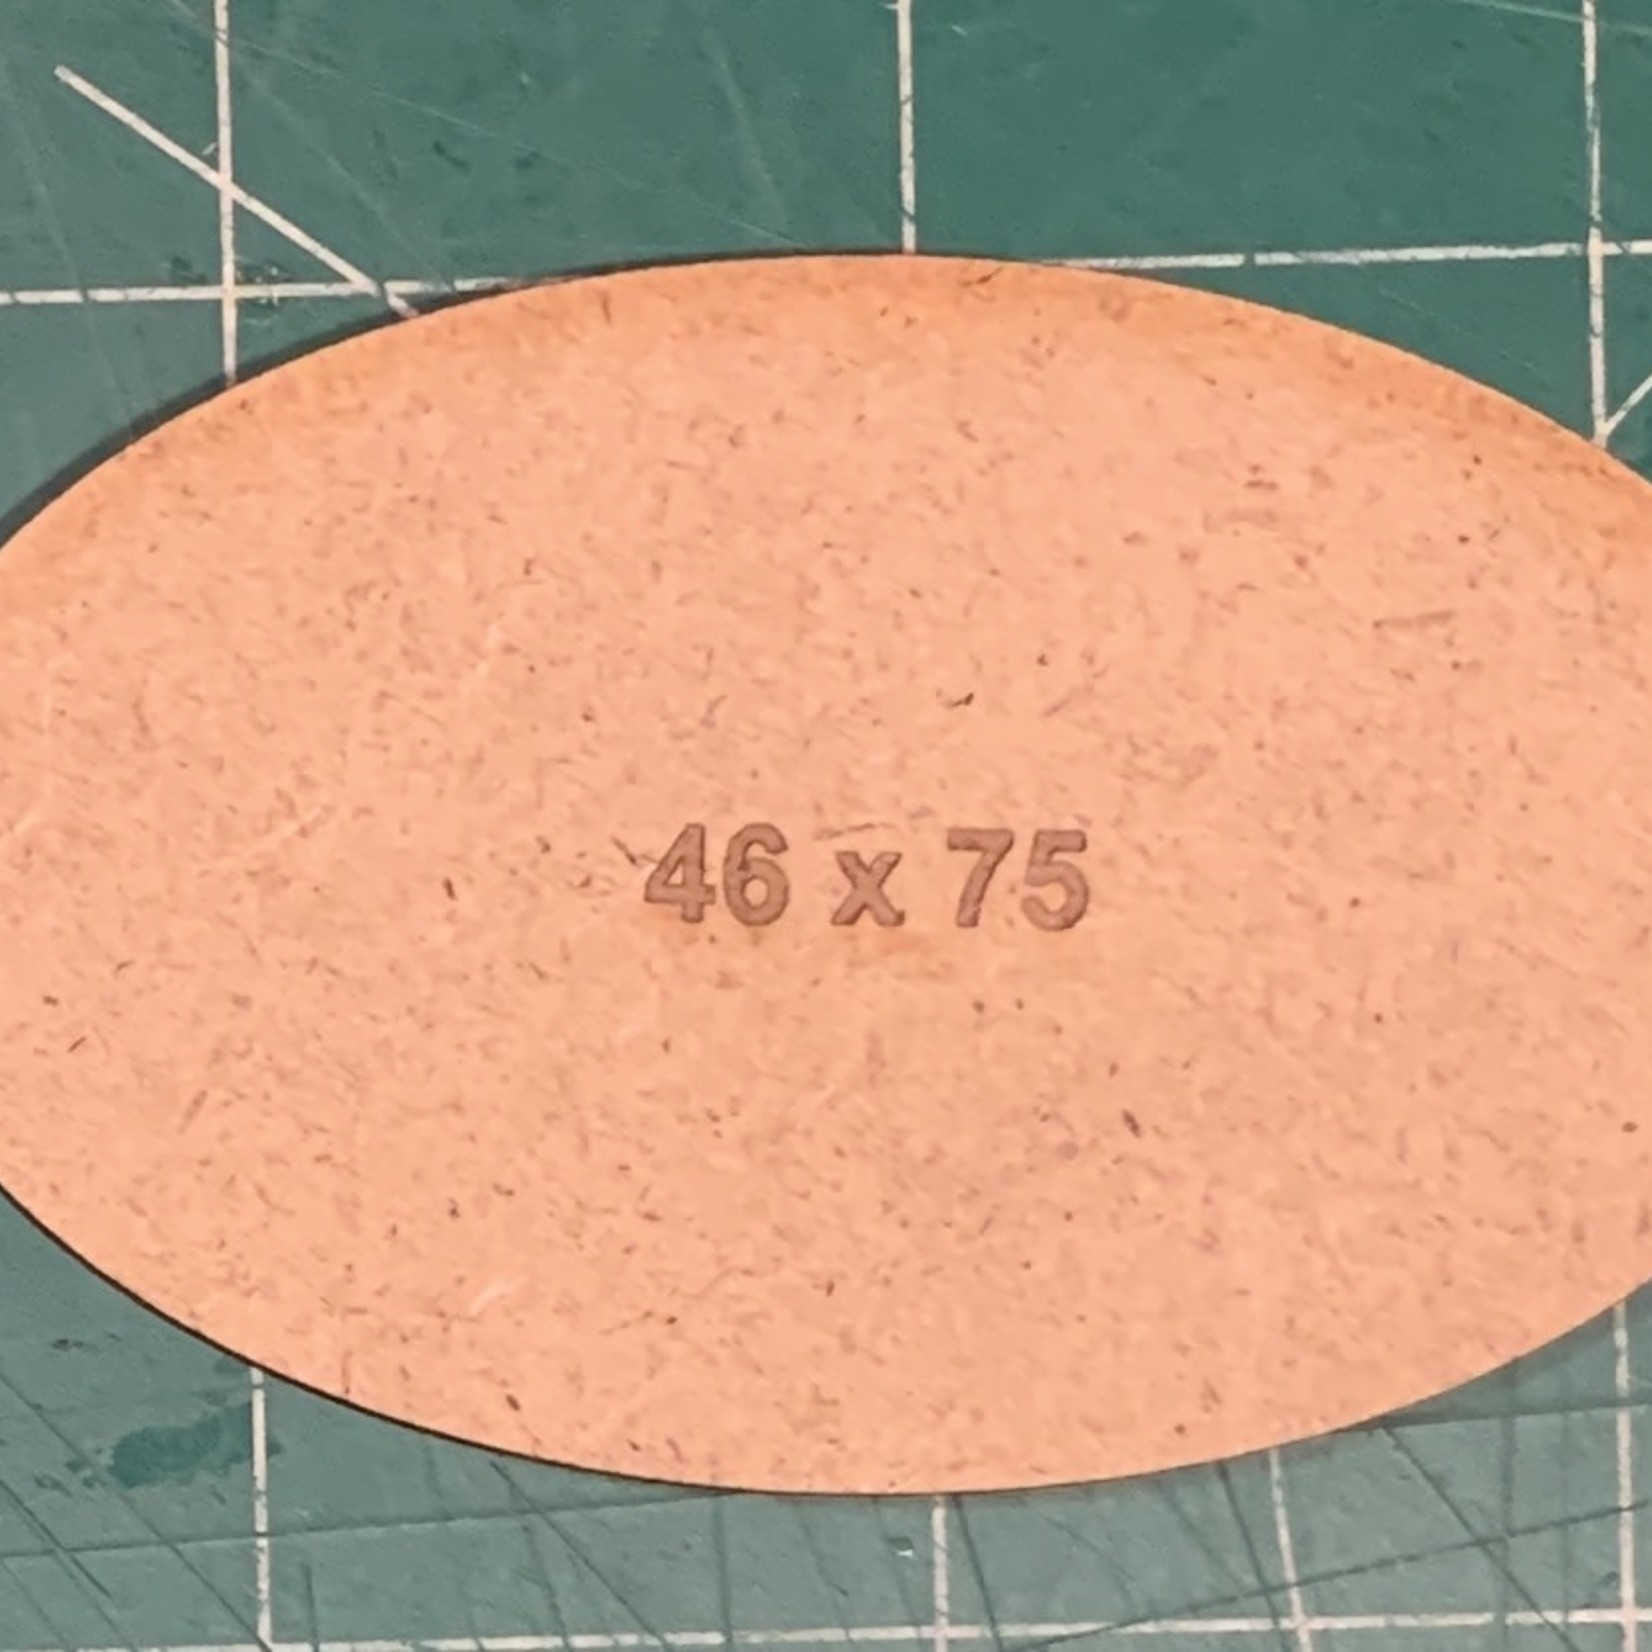 Oval 46 x 75mm MDF Bases (x2)